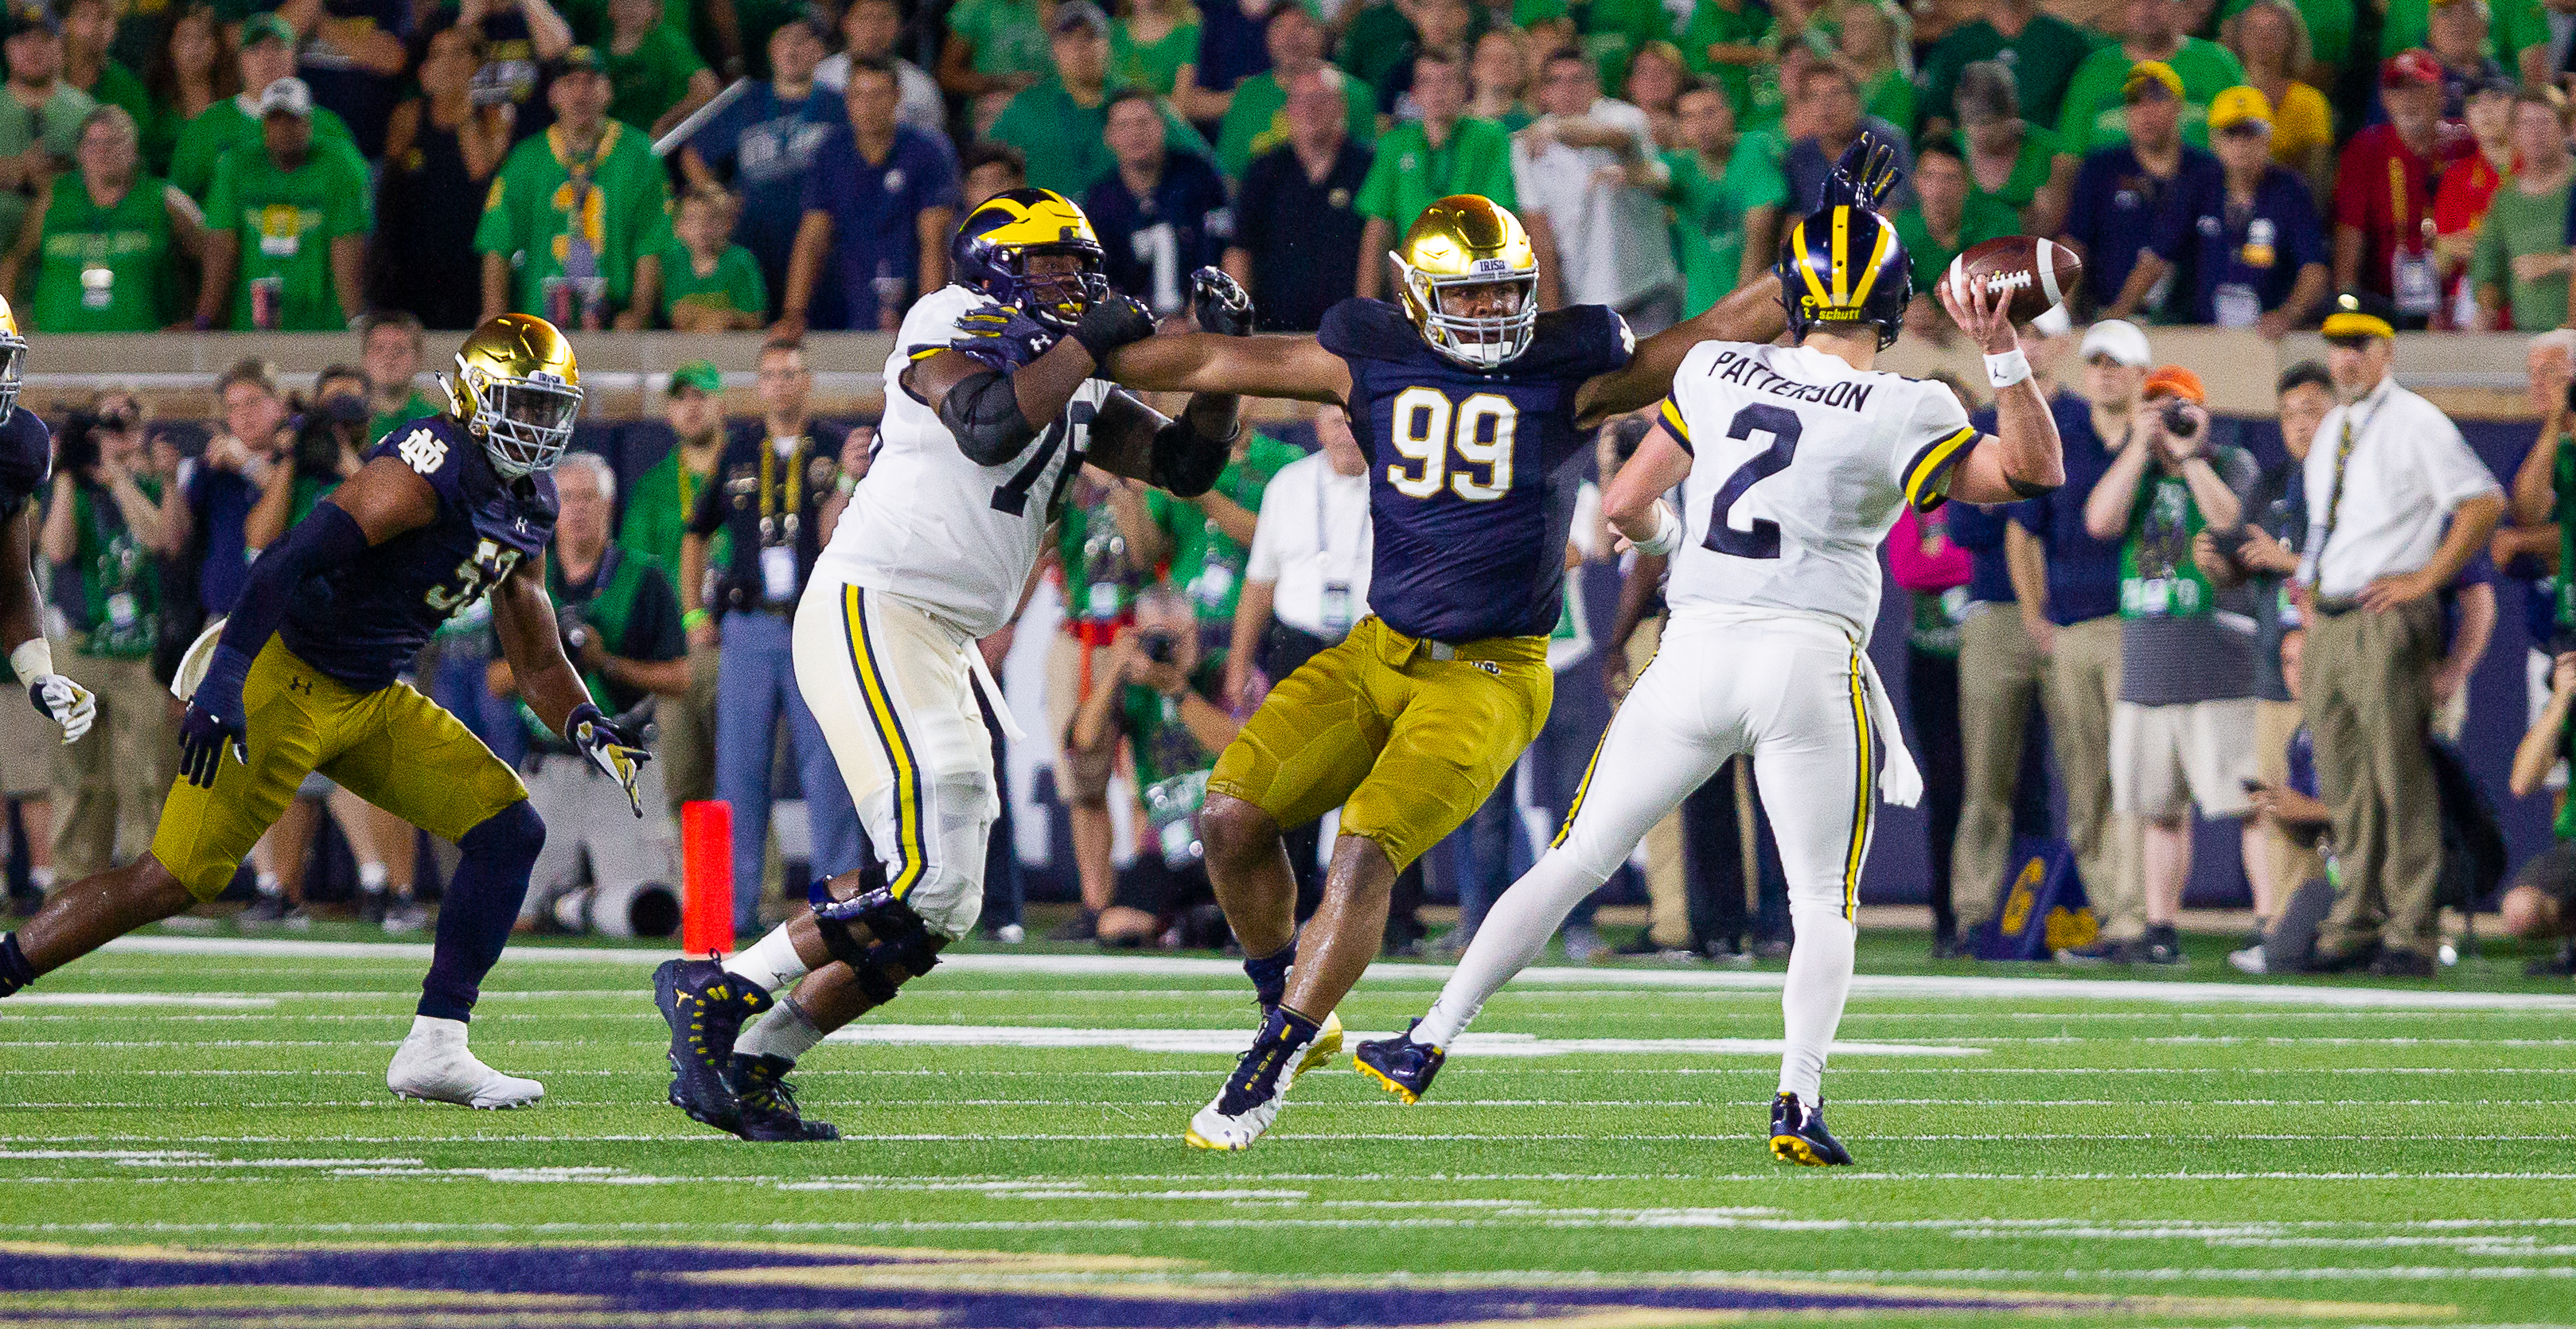 ND Football: Welcome To The NFL Jerry Tillery!